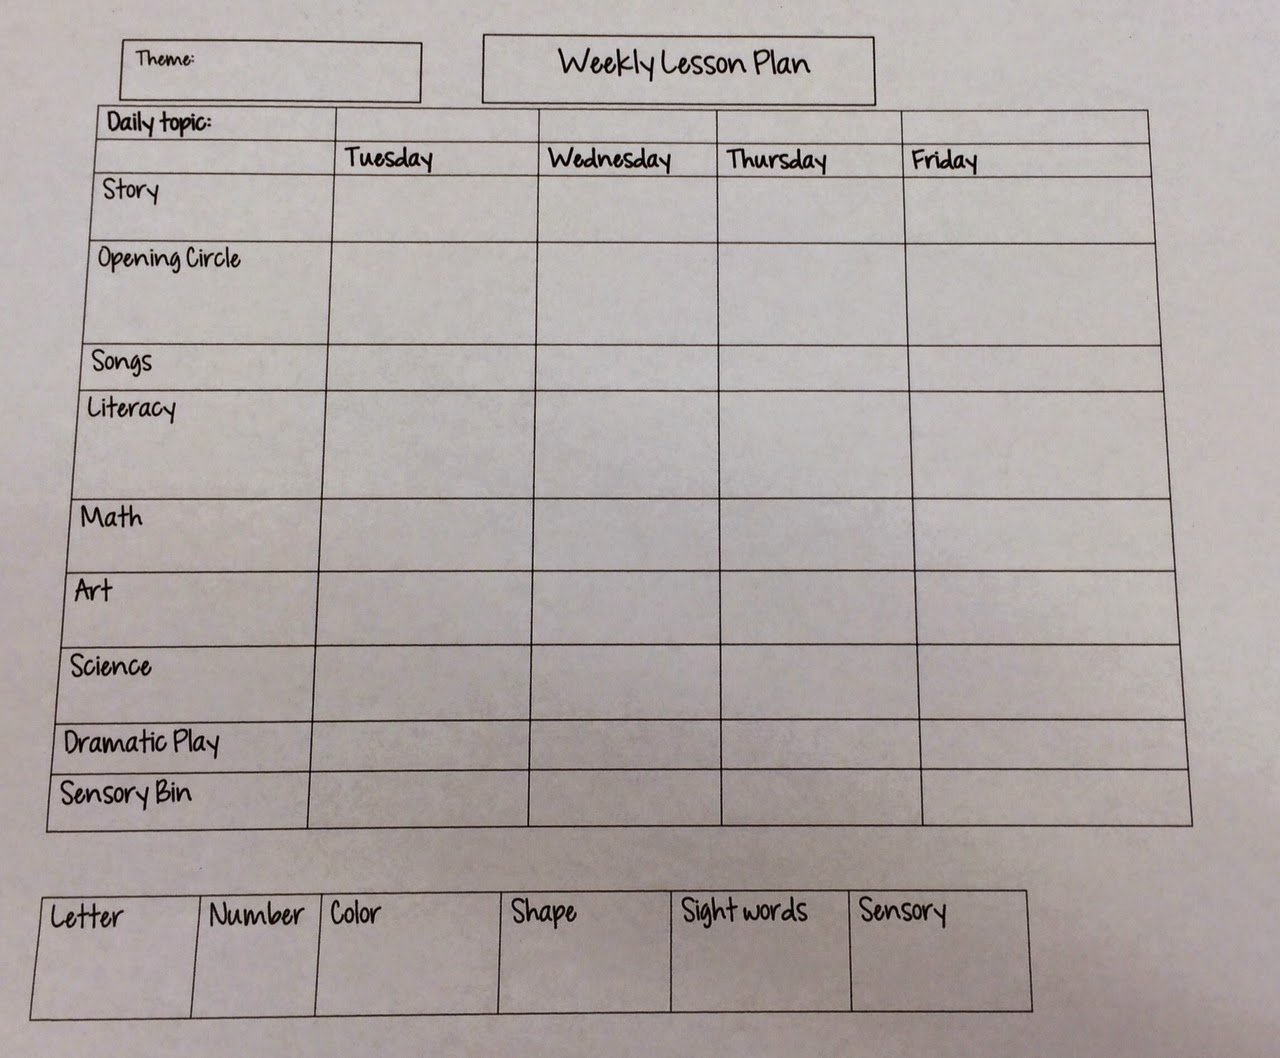 Lesson Plan Template for toddlers Awesome Miss Nicole S Preschool Weekly Lesson Plan Template